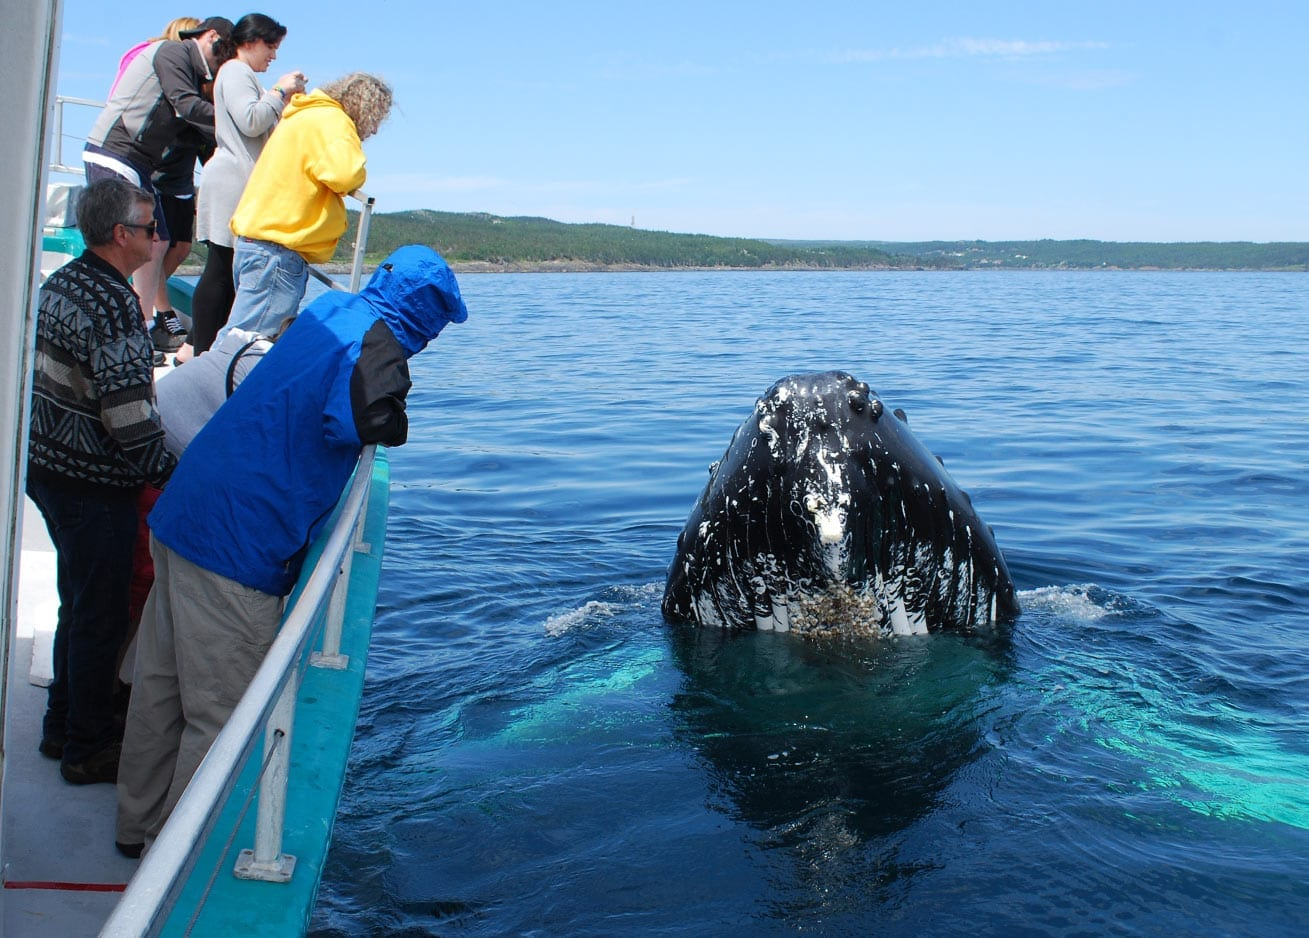 Surreal closeness with whales in Newfoundland